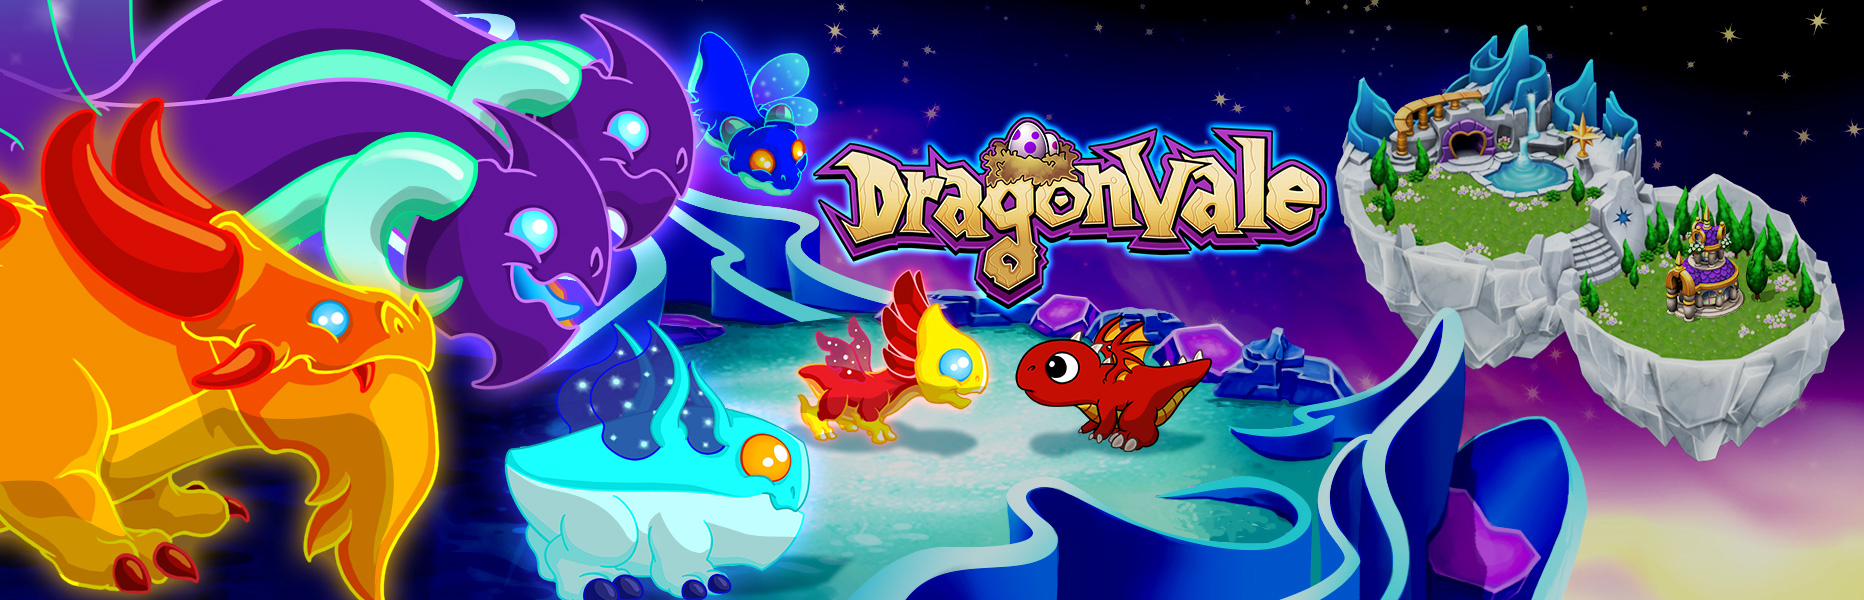 DV 3 0 Update and Galaxy Dragons | THE Dragonvale Community